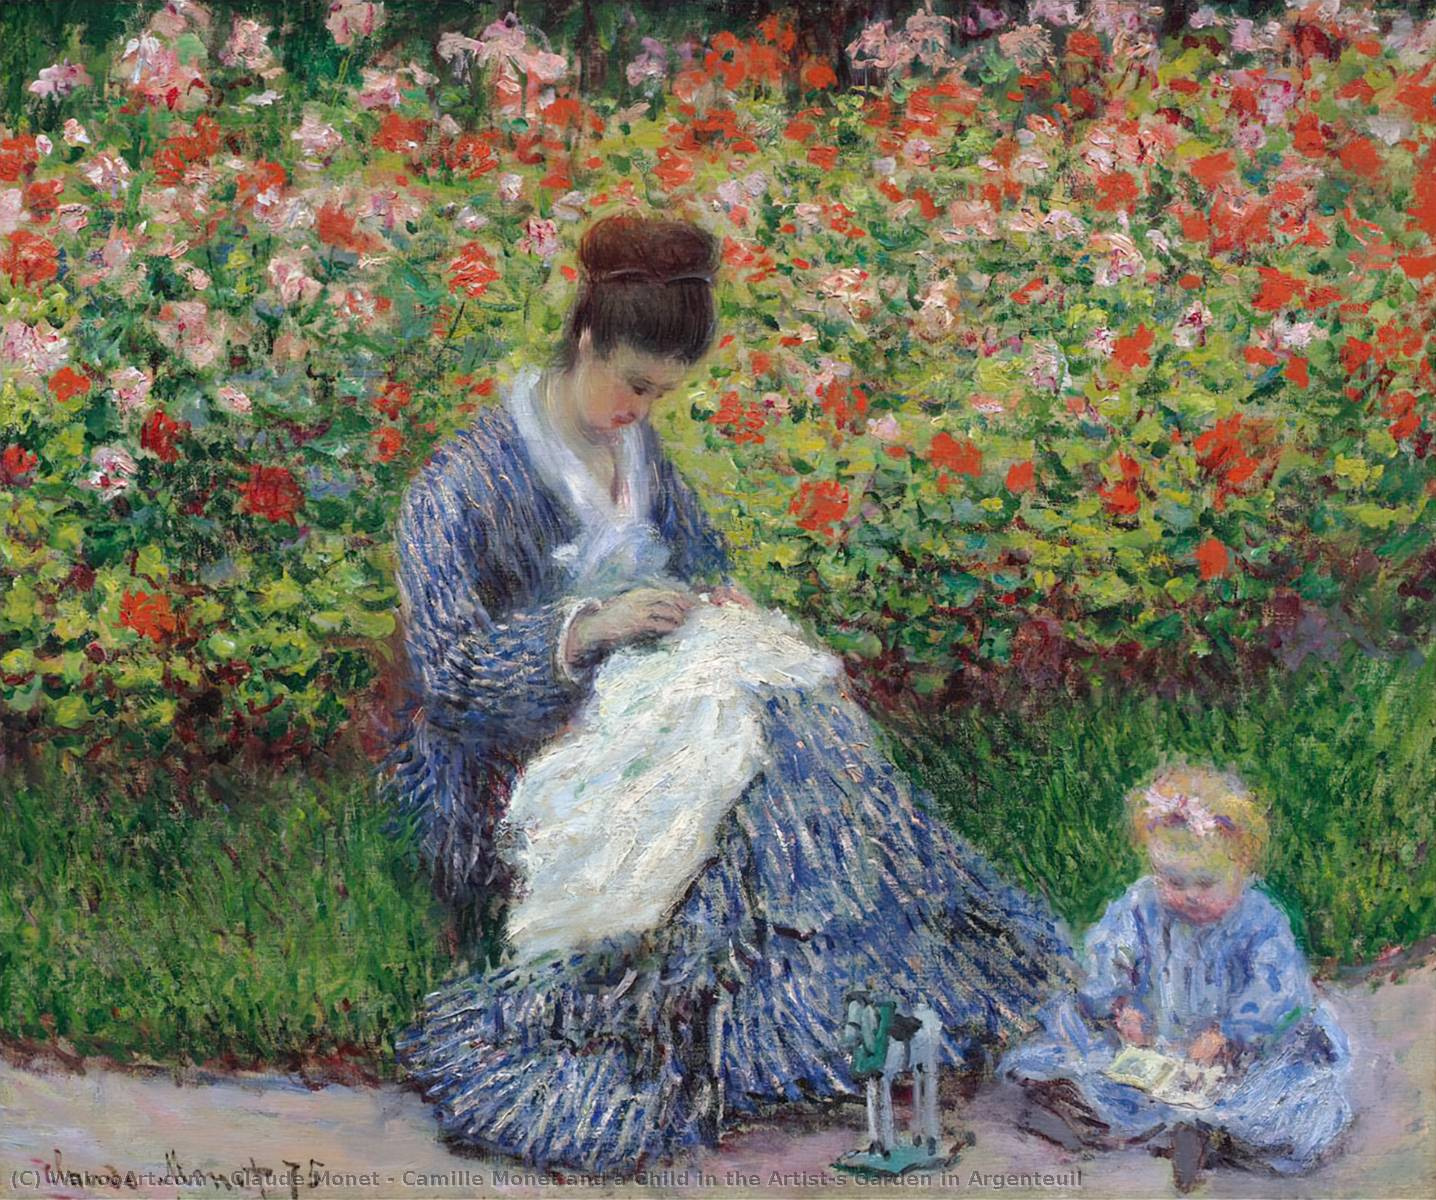 Camille Monet And A Child In The Artist S Garden In Argenteuil 1875 By Claude Monet 1840 1926 France Art Reproductions Claude Monet Wahooart Com